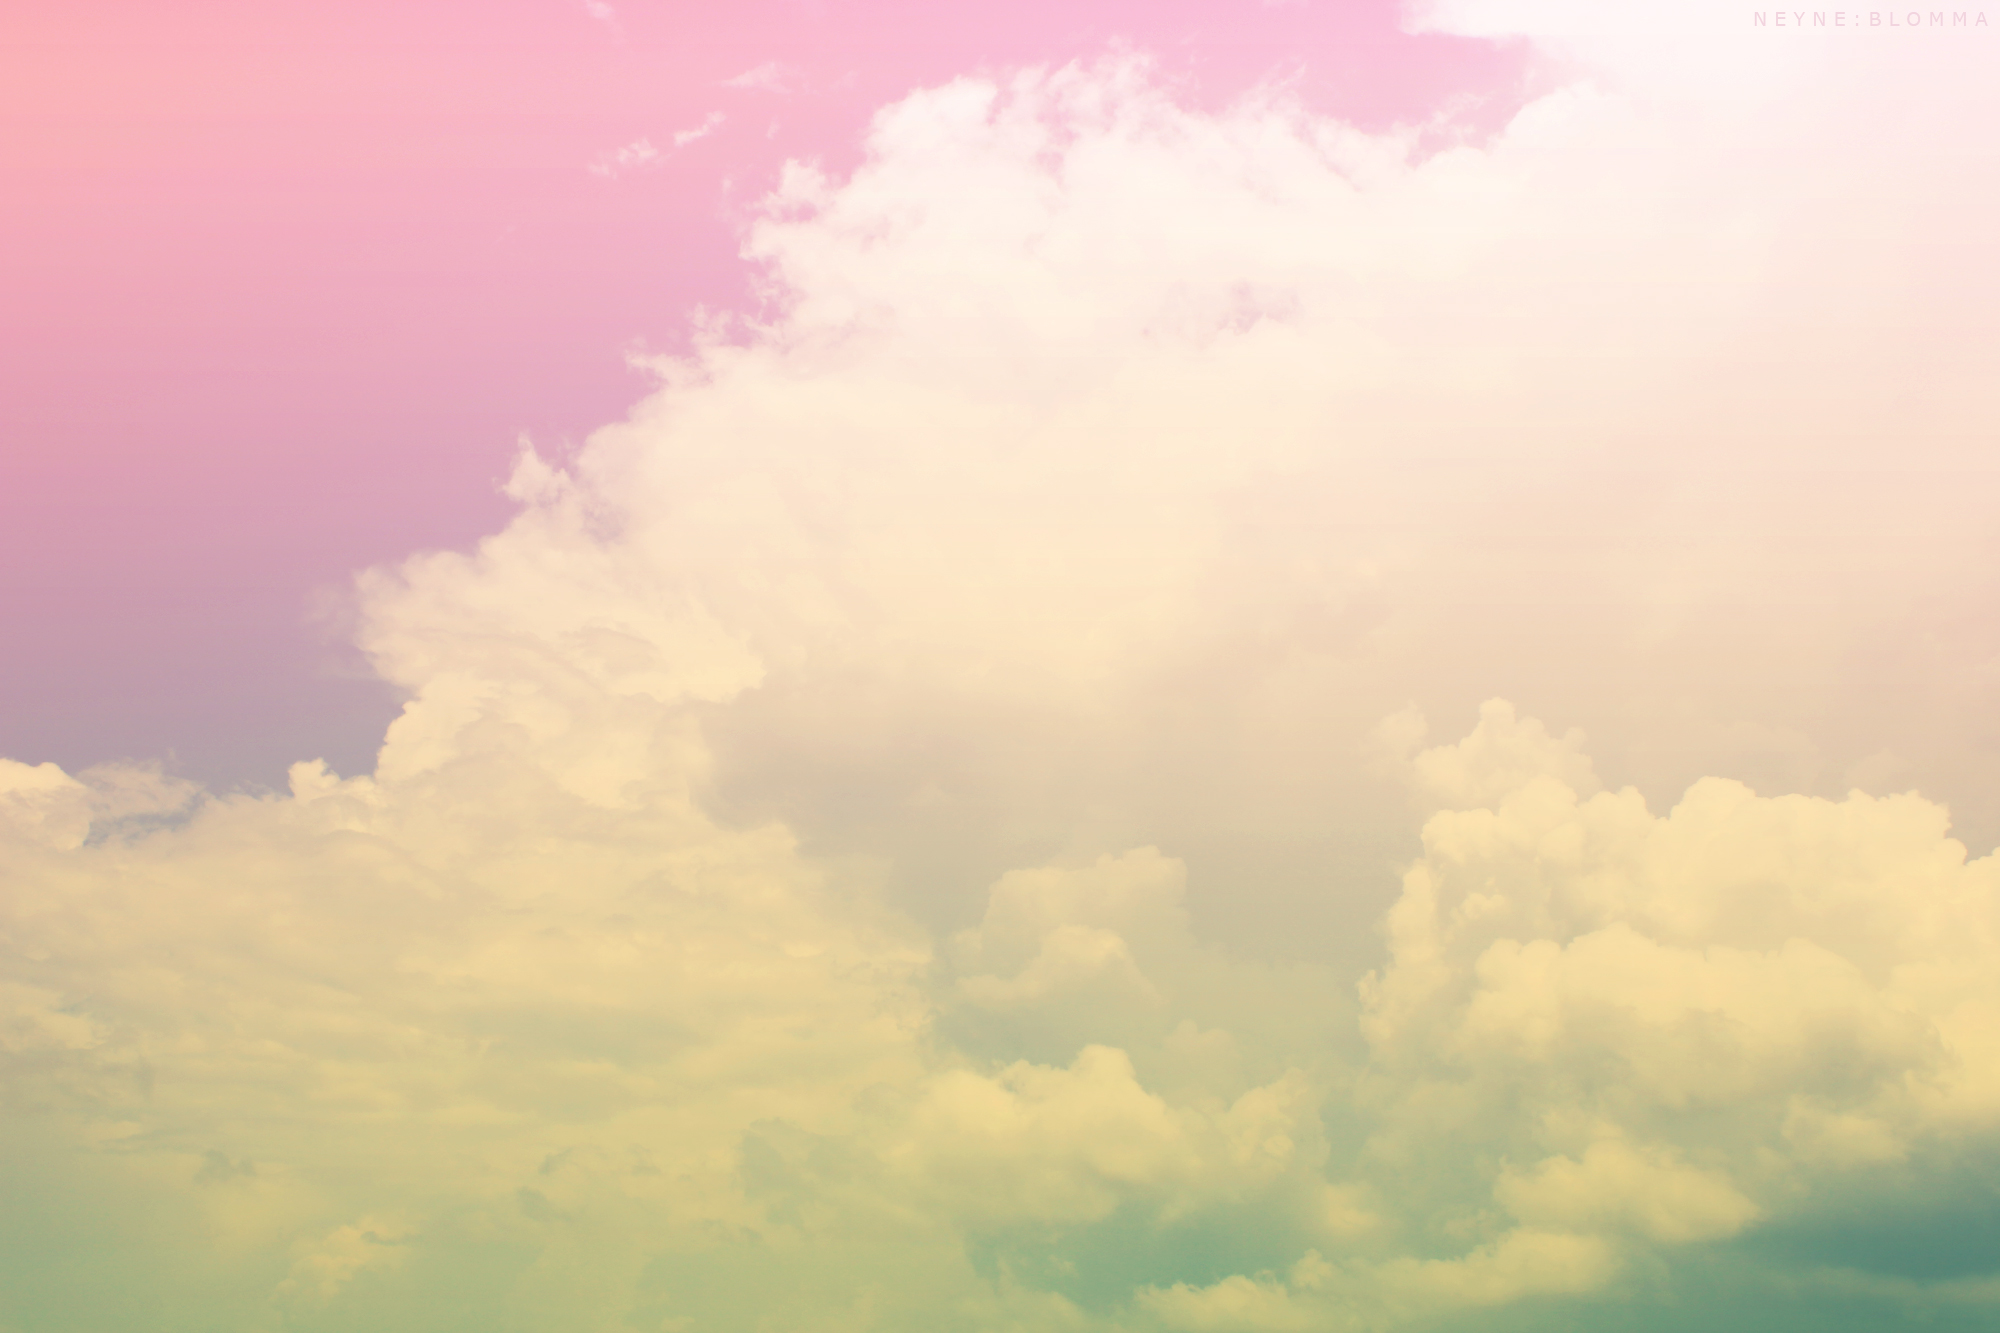 Pastel Cloud Tumblr Backgrounds Pastel goth background clouds 2000x1333